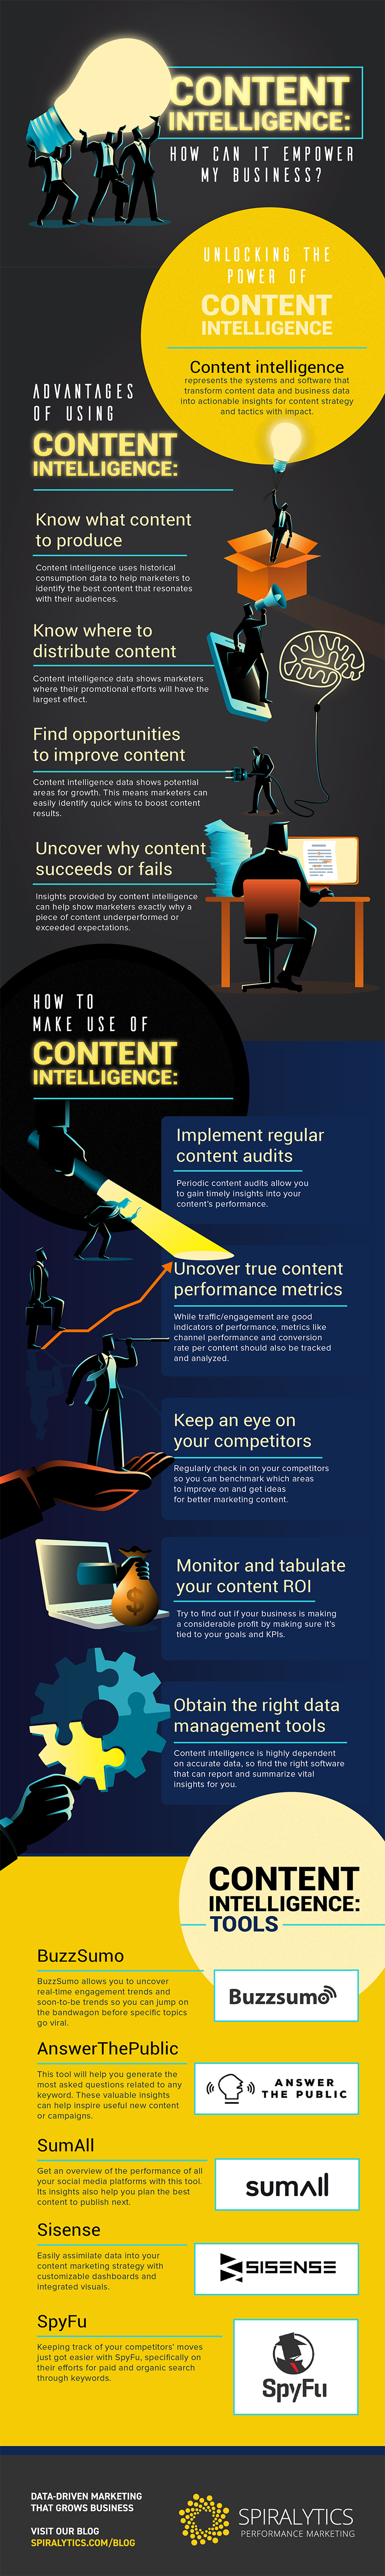 Infographic looks at content intelligence tools and tips